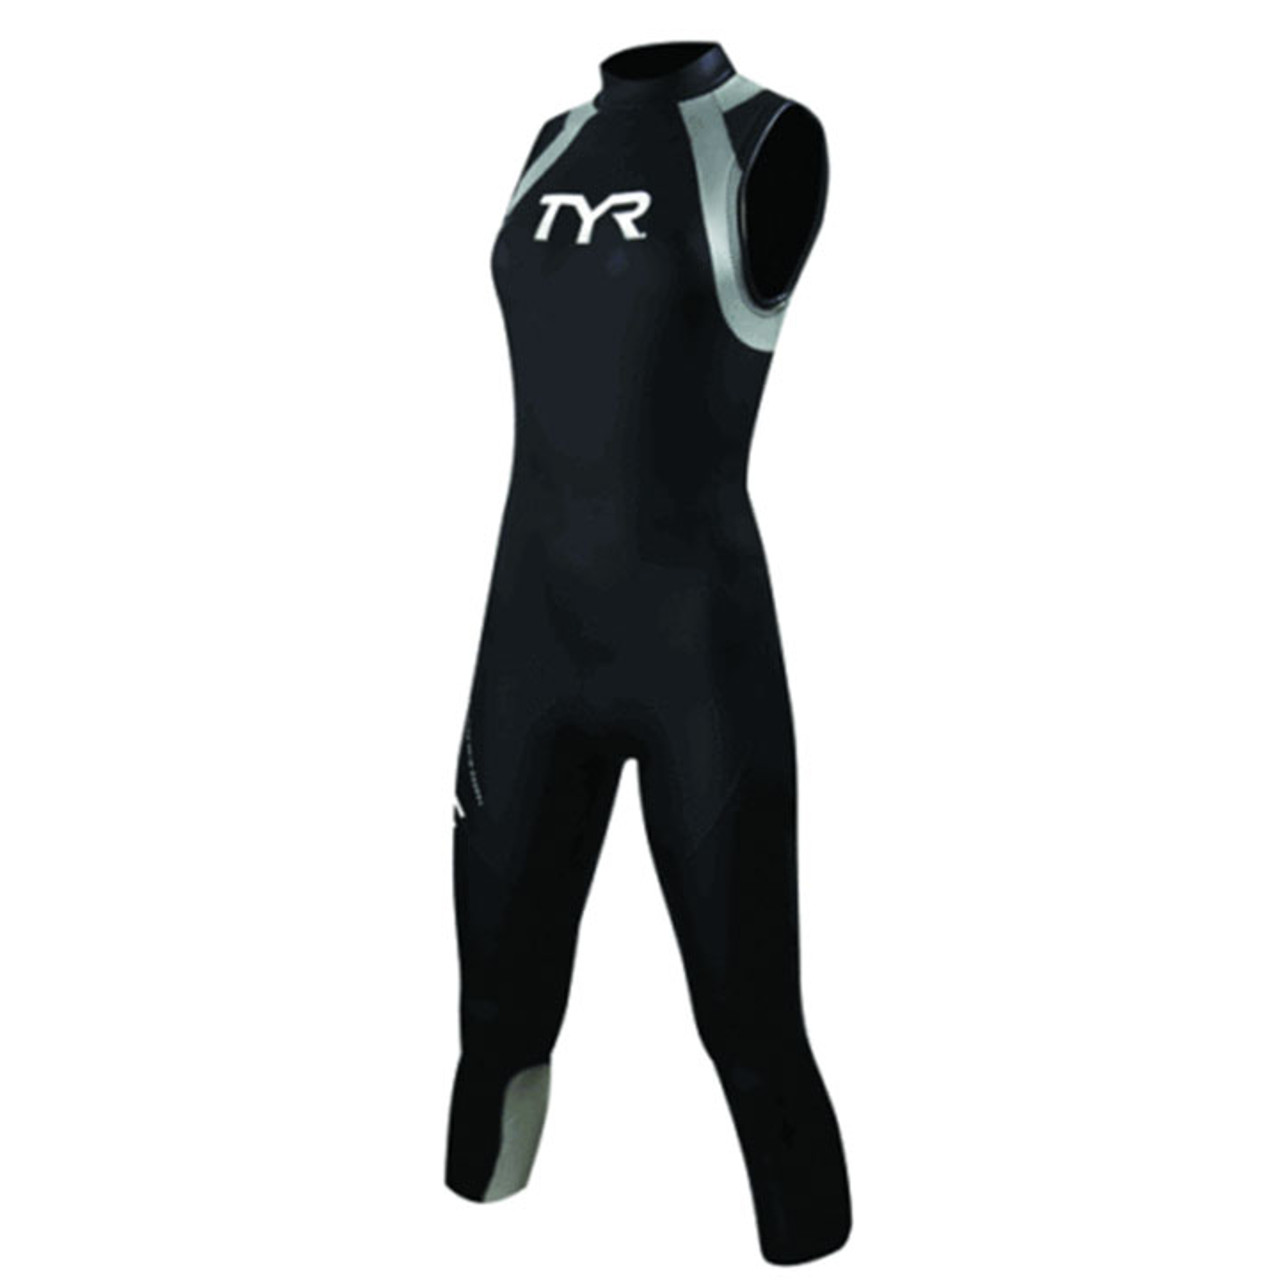 Women S Tyr Cat 1 Hurricane Sleeveless Size M 129 141 Lbs Wetsuit Outlet